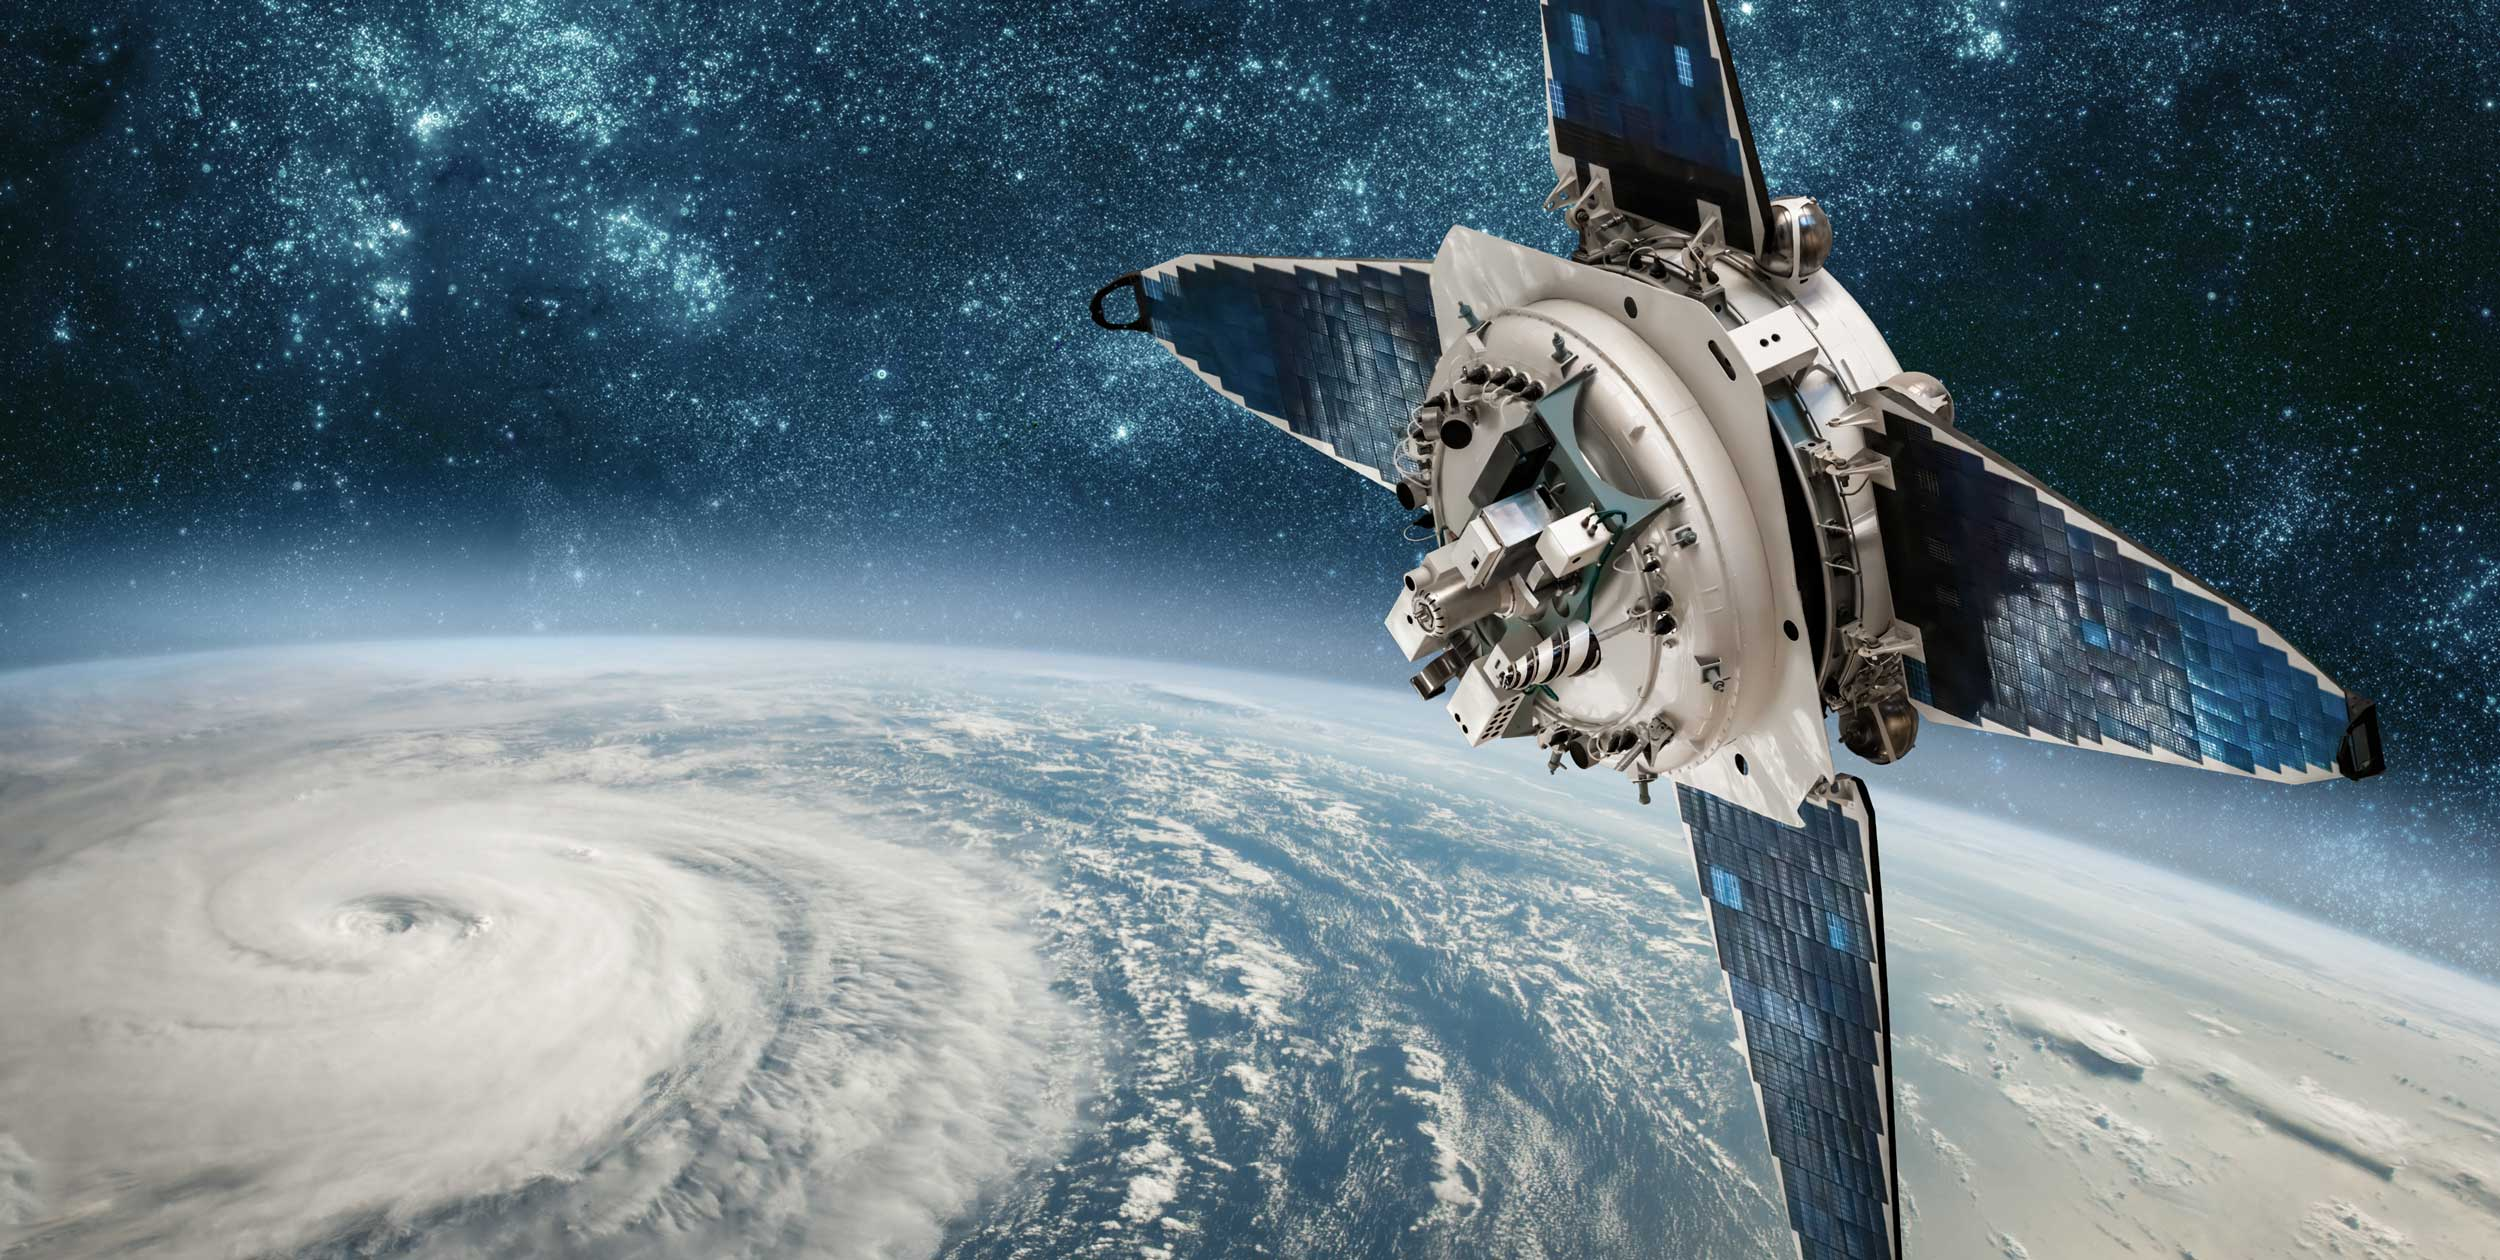 space-satellite-monitoring-from-earth-orbit-weathe-26GDTNU-1